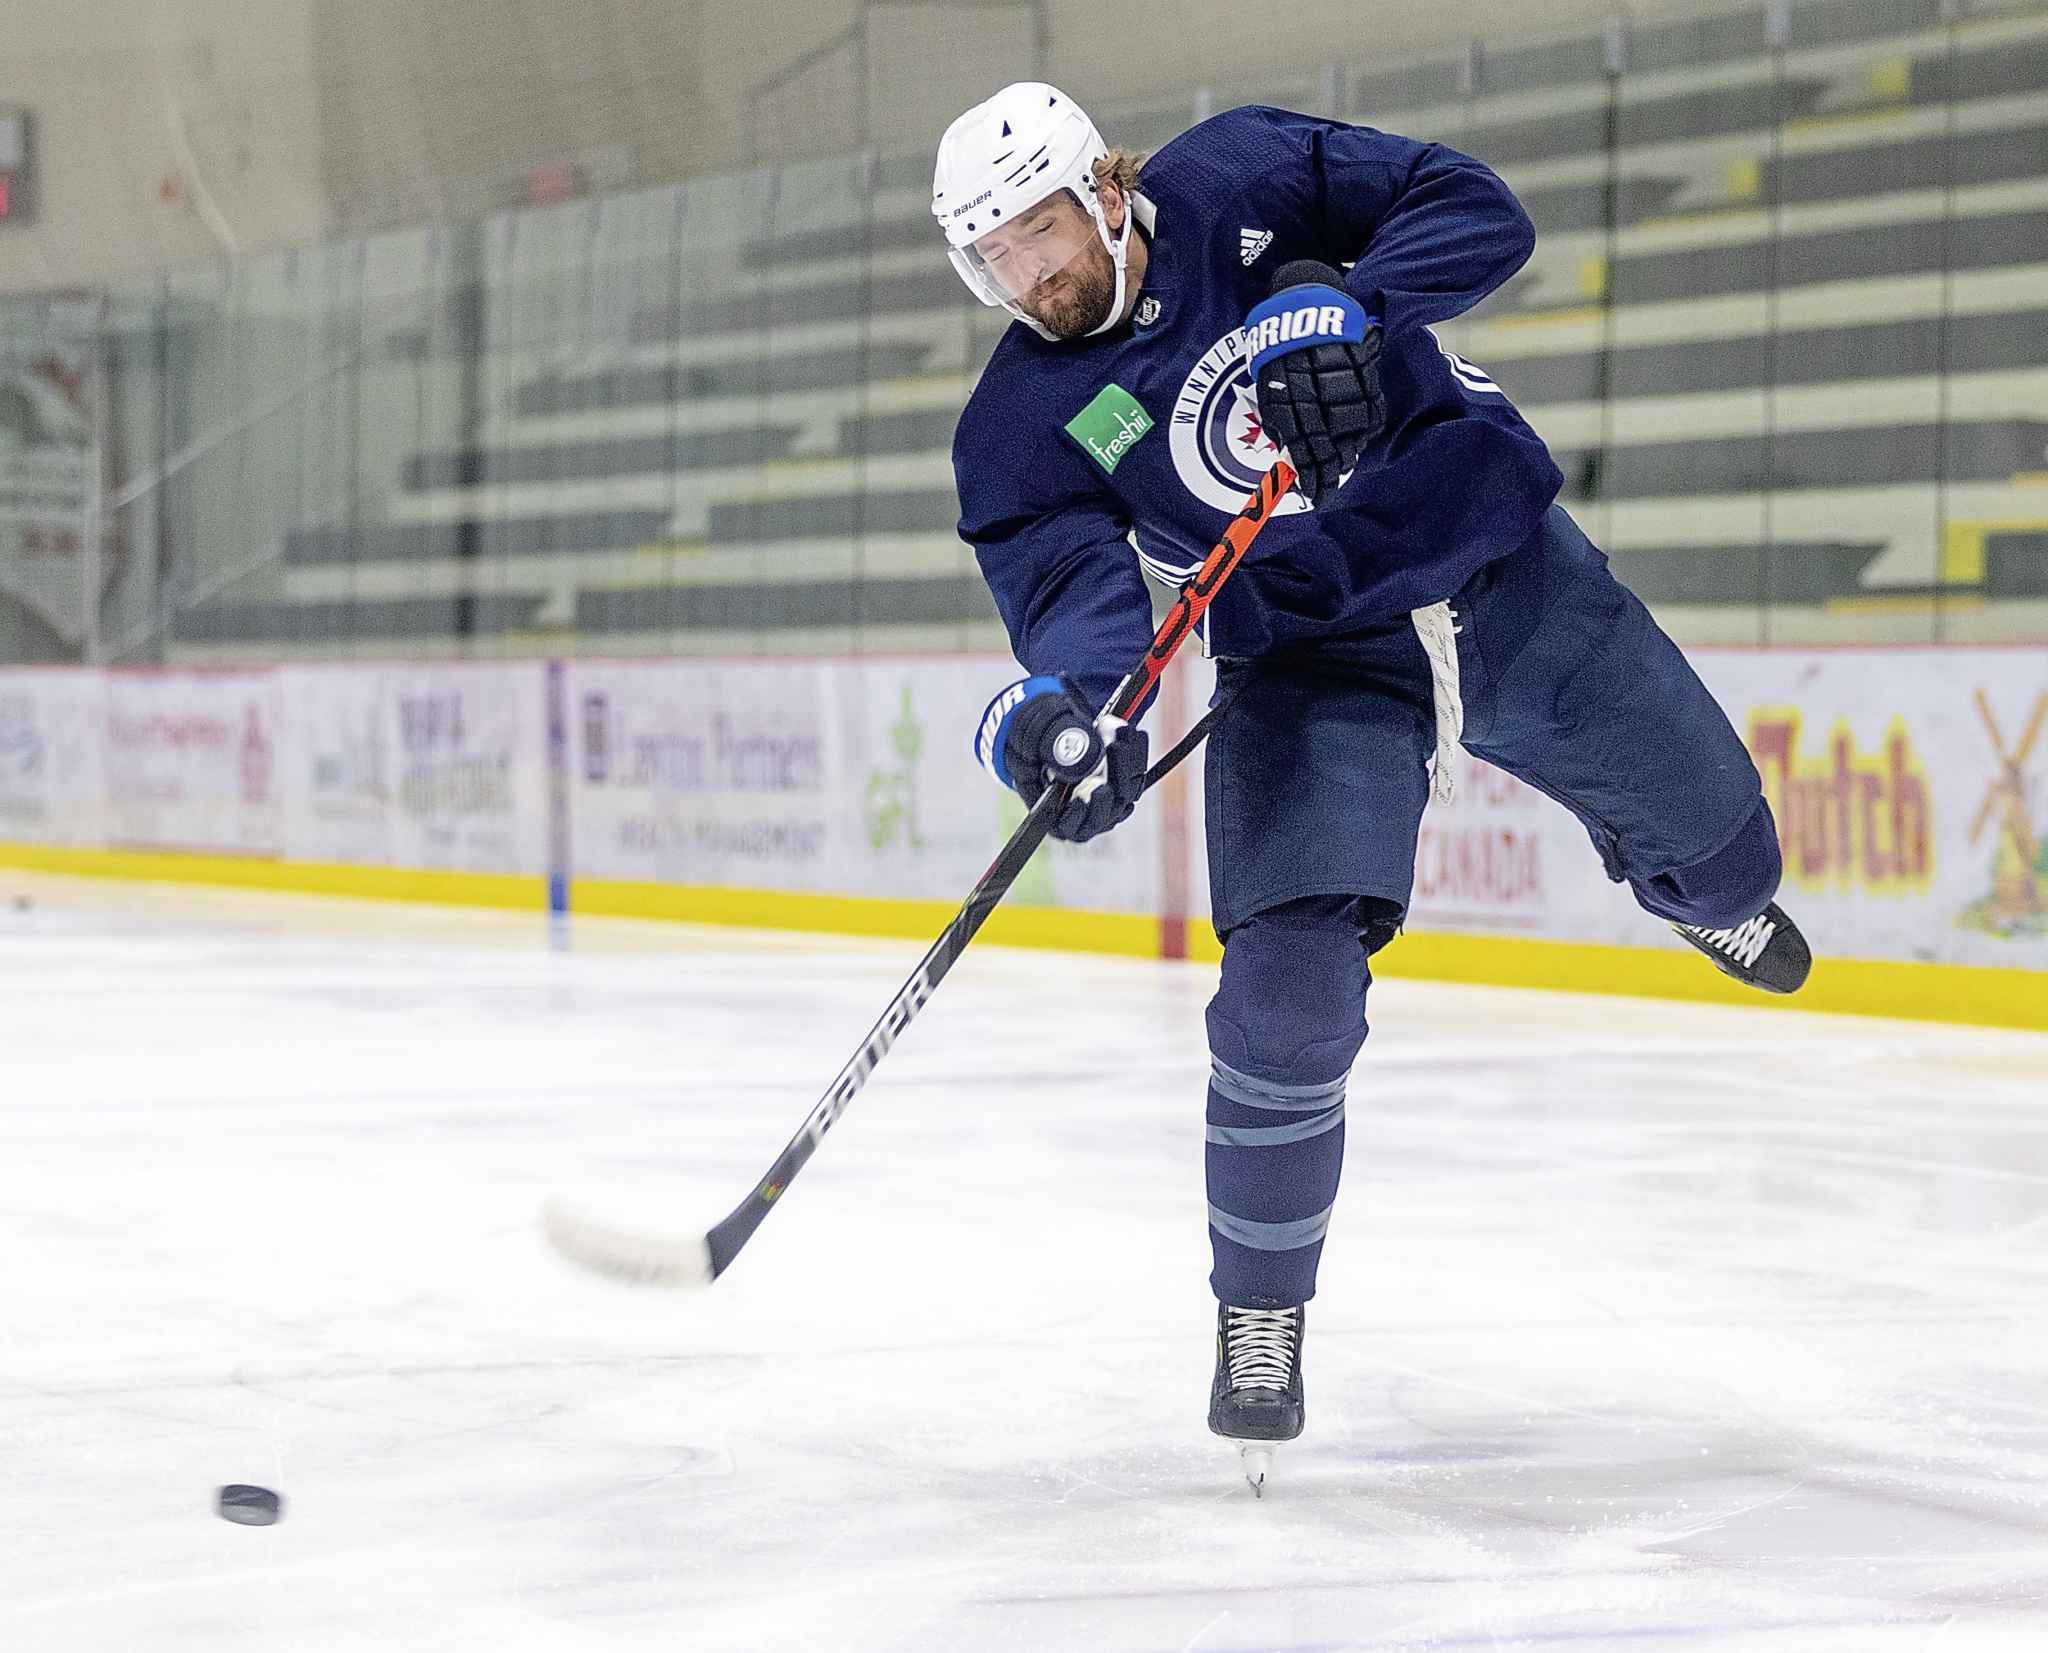 SASHA SEFTER / WINNIPEG FREE PRESS FILES</p><p>Blake Wheeler</p>